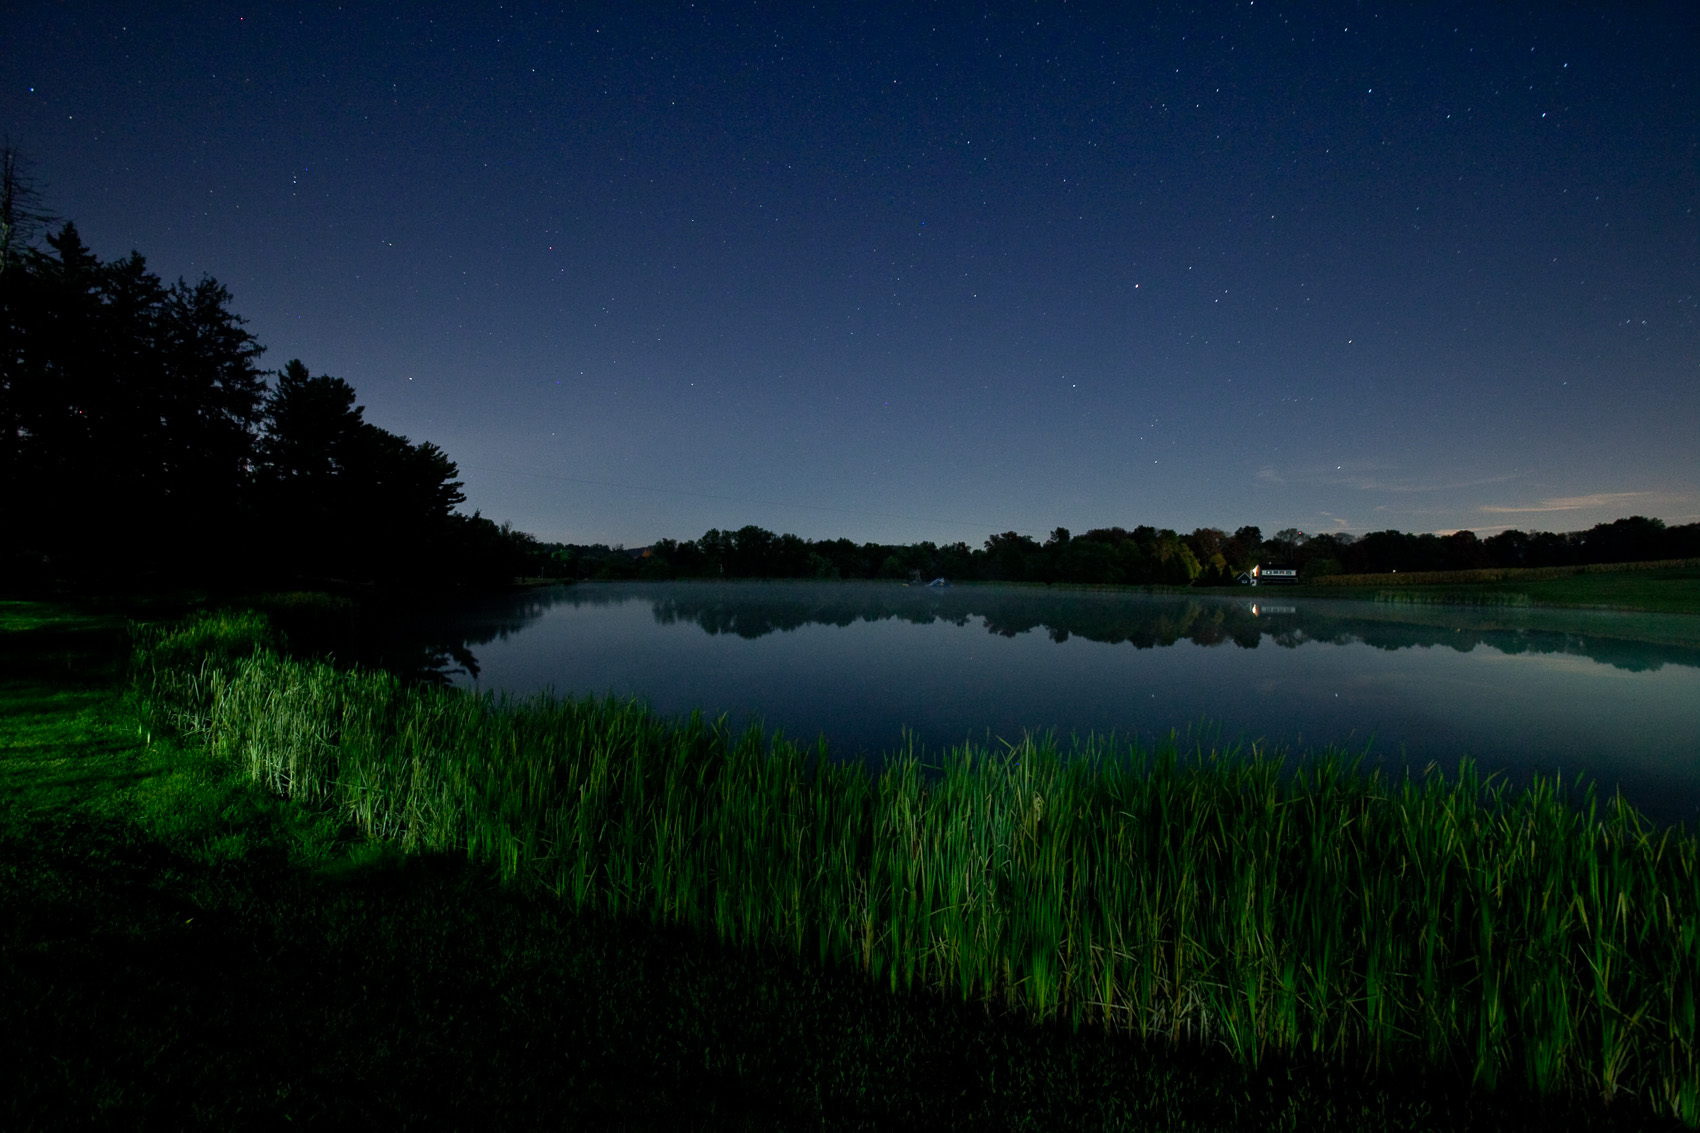 View of the Night Sky over a Peaceful Pond | J. Eldon Zimmerman Photography | Lancaster, PA Commercial Photographer